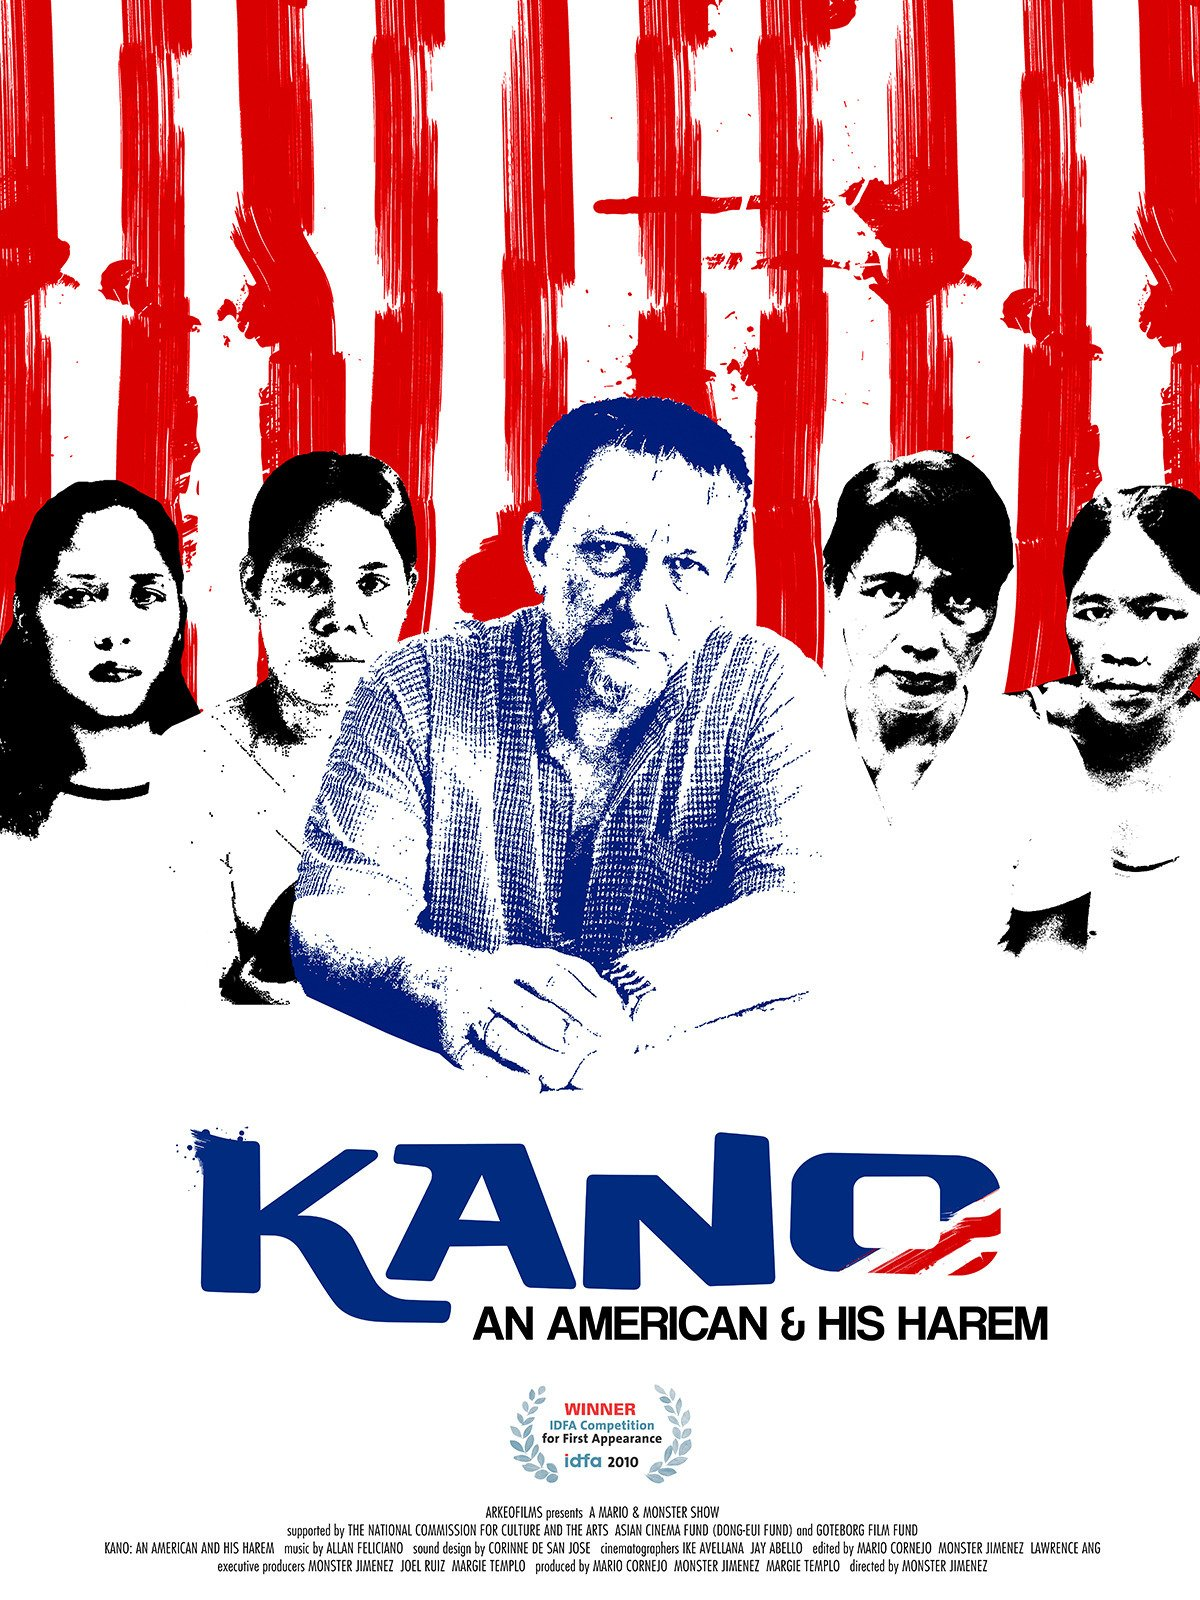 Kano: An American and His Harem